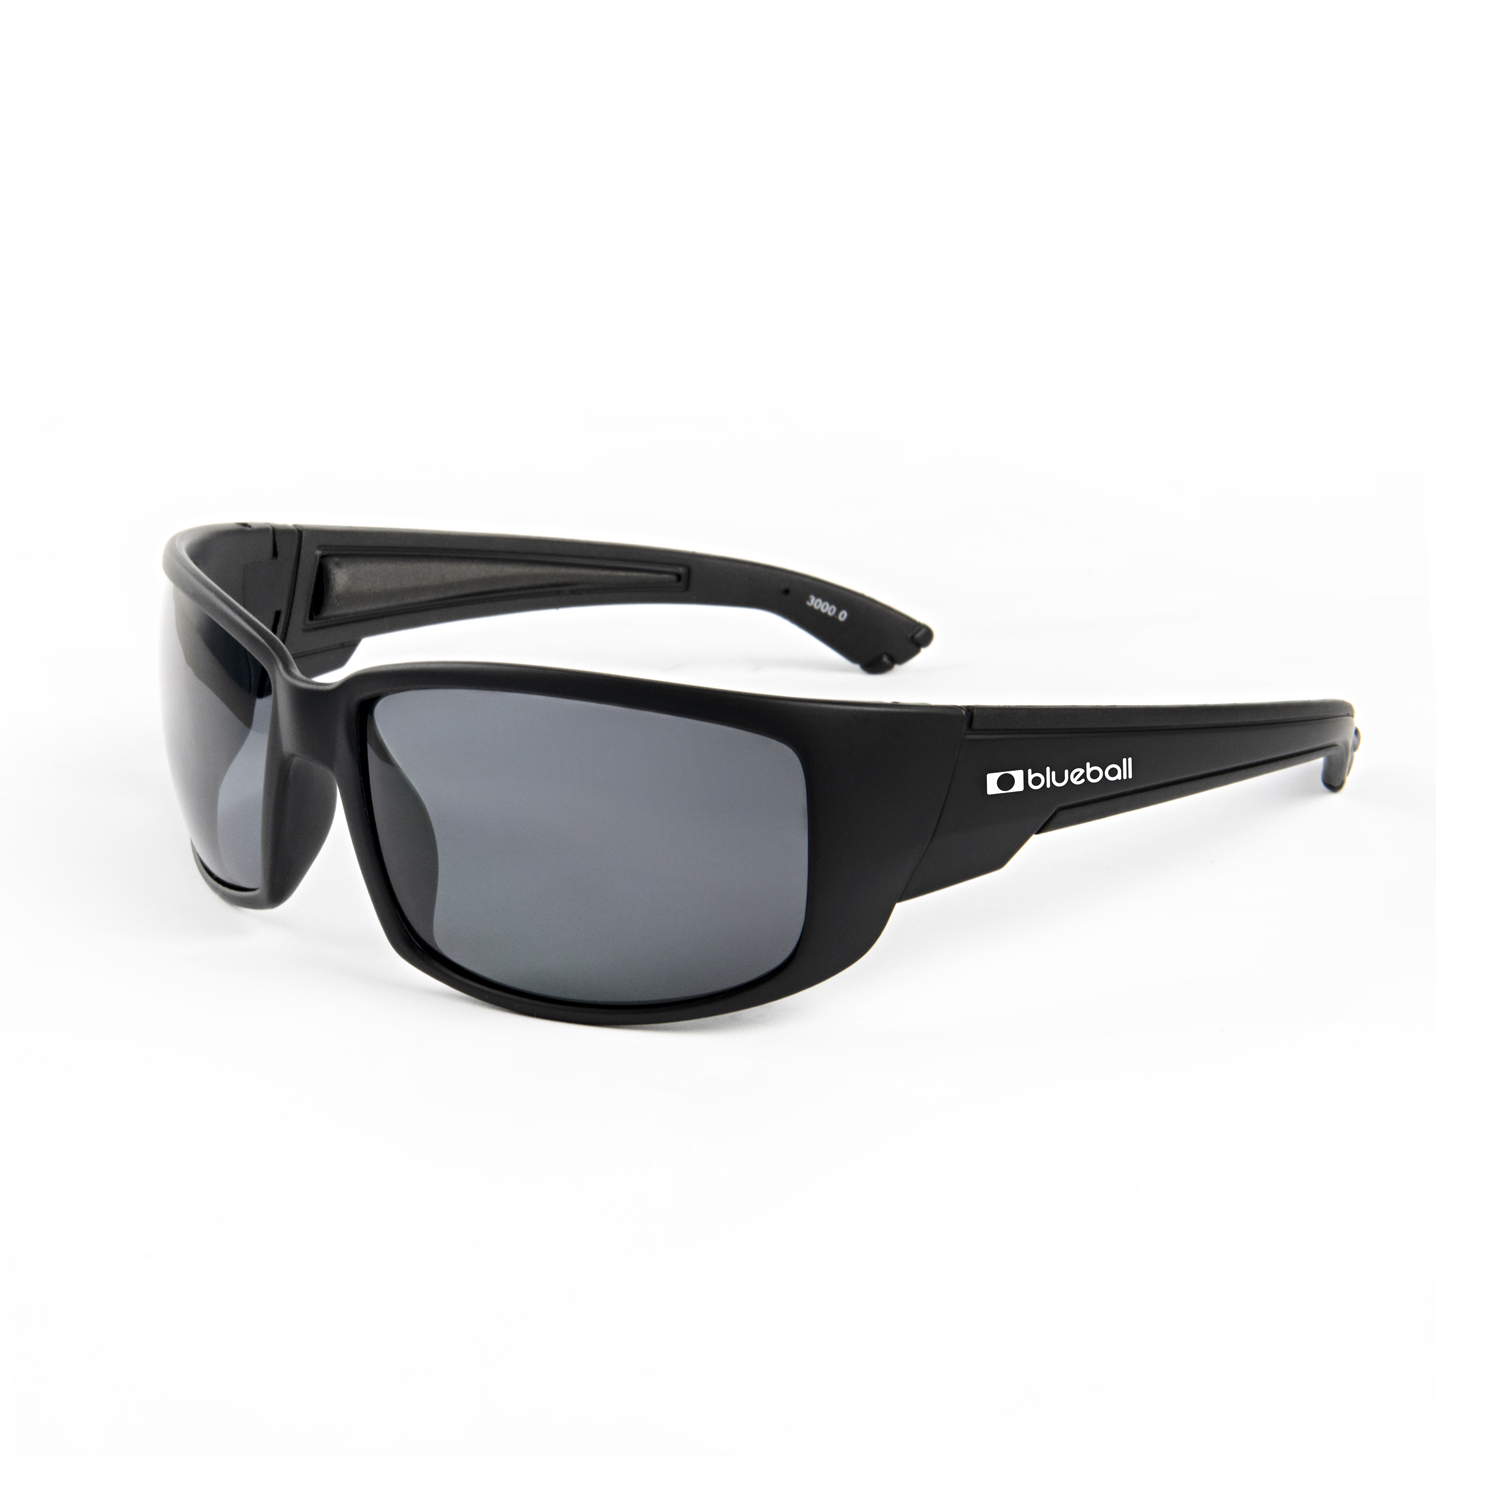 bb3000 sport sunglasses